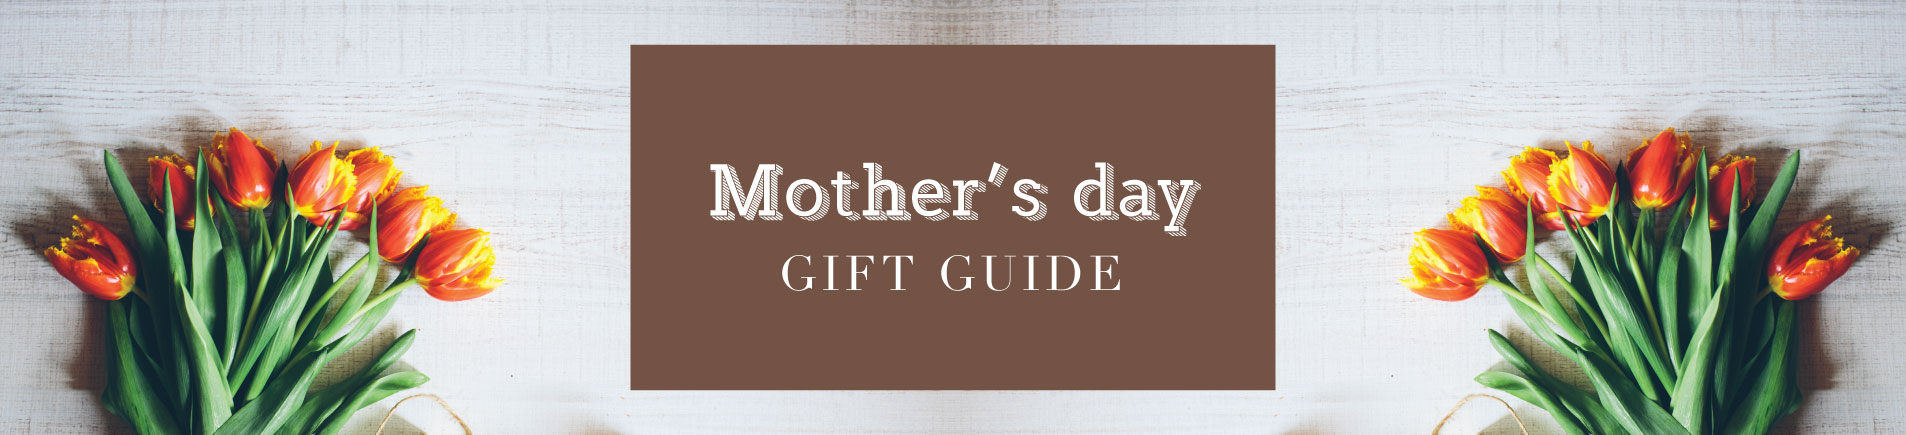 H10 Mother's Day Gift Ideas